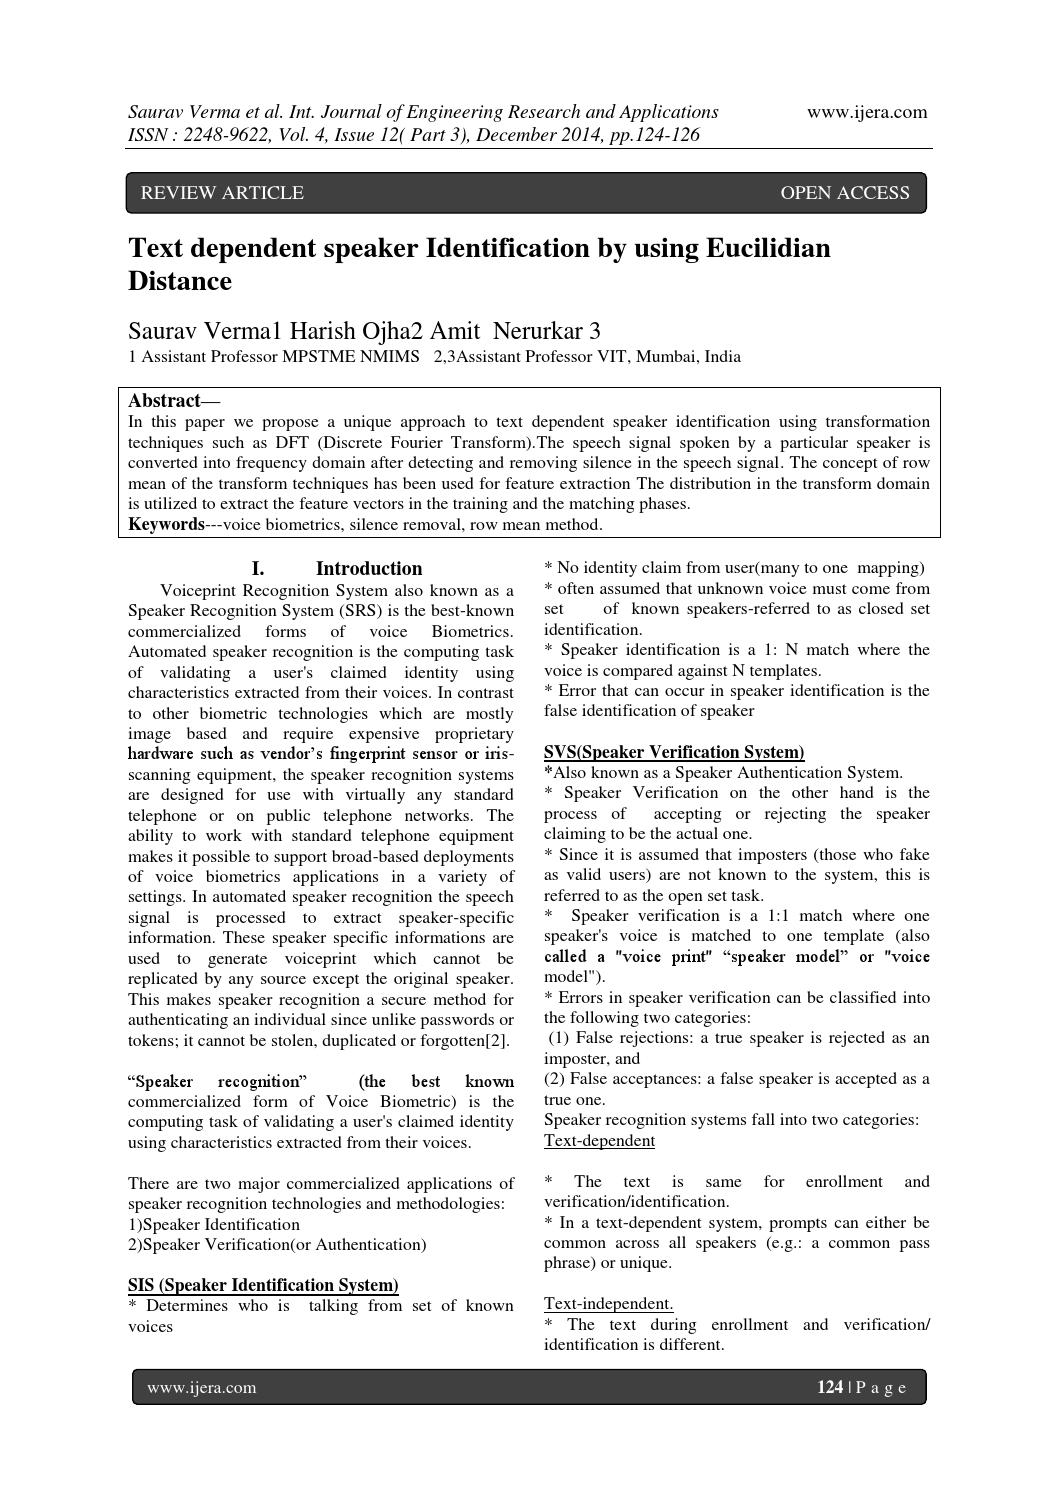 Text dependent speaker Identification by using Eucilidian Distance